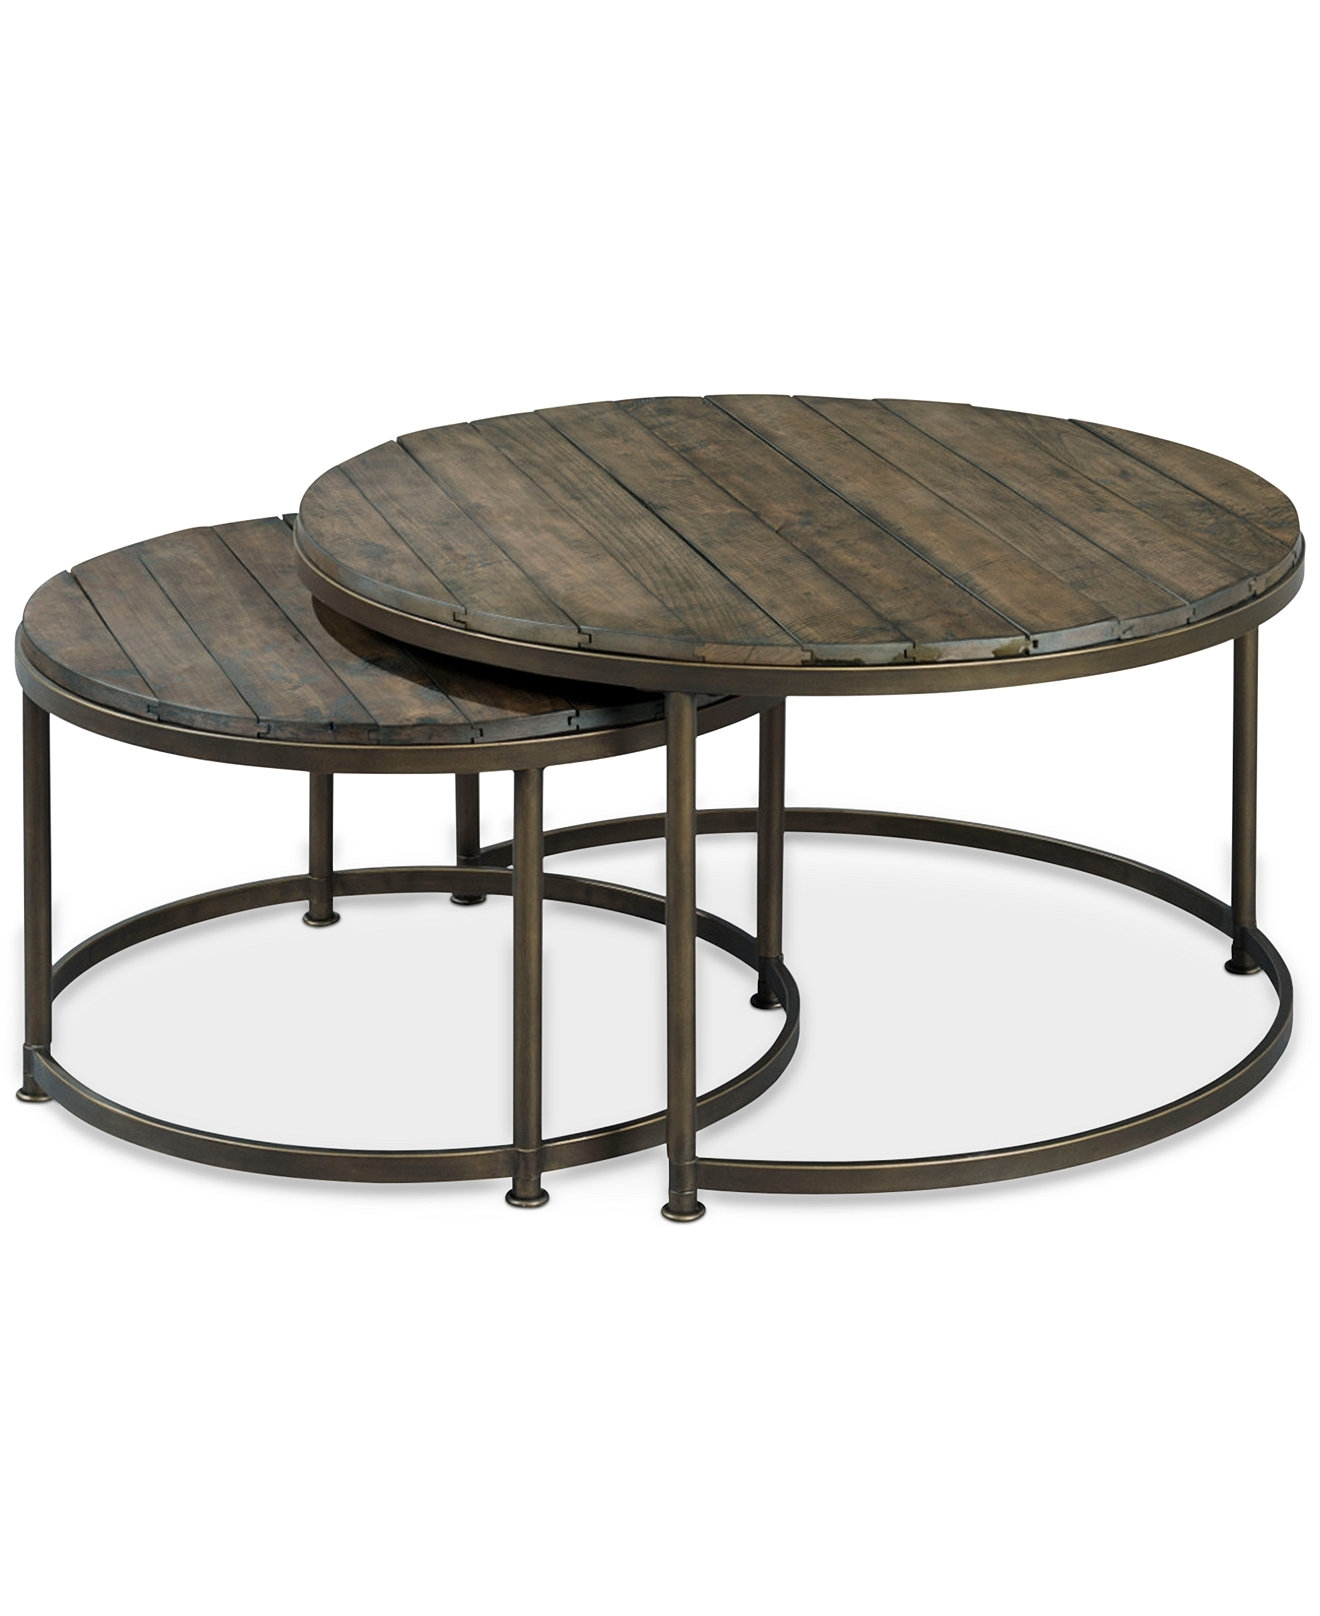 Coffee Table: Contemporary Nesting Coffee Table Round Round Coffee Intended For Famous Set Of Nesting Coffee Tables (View 5 of 20)